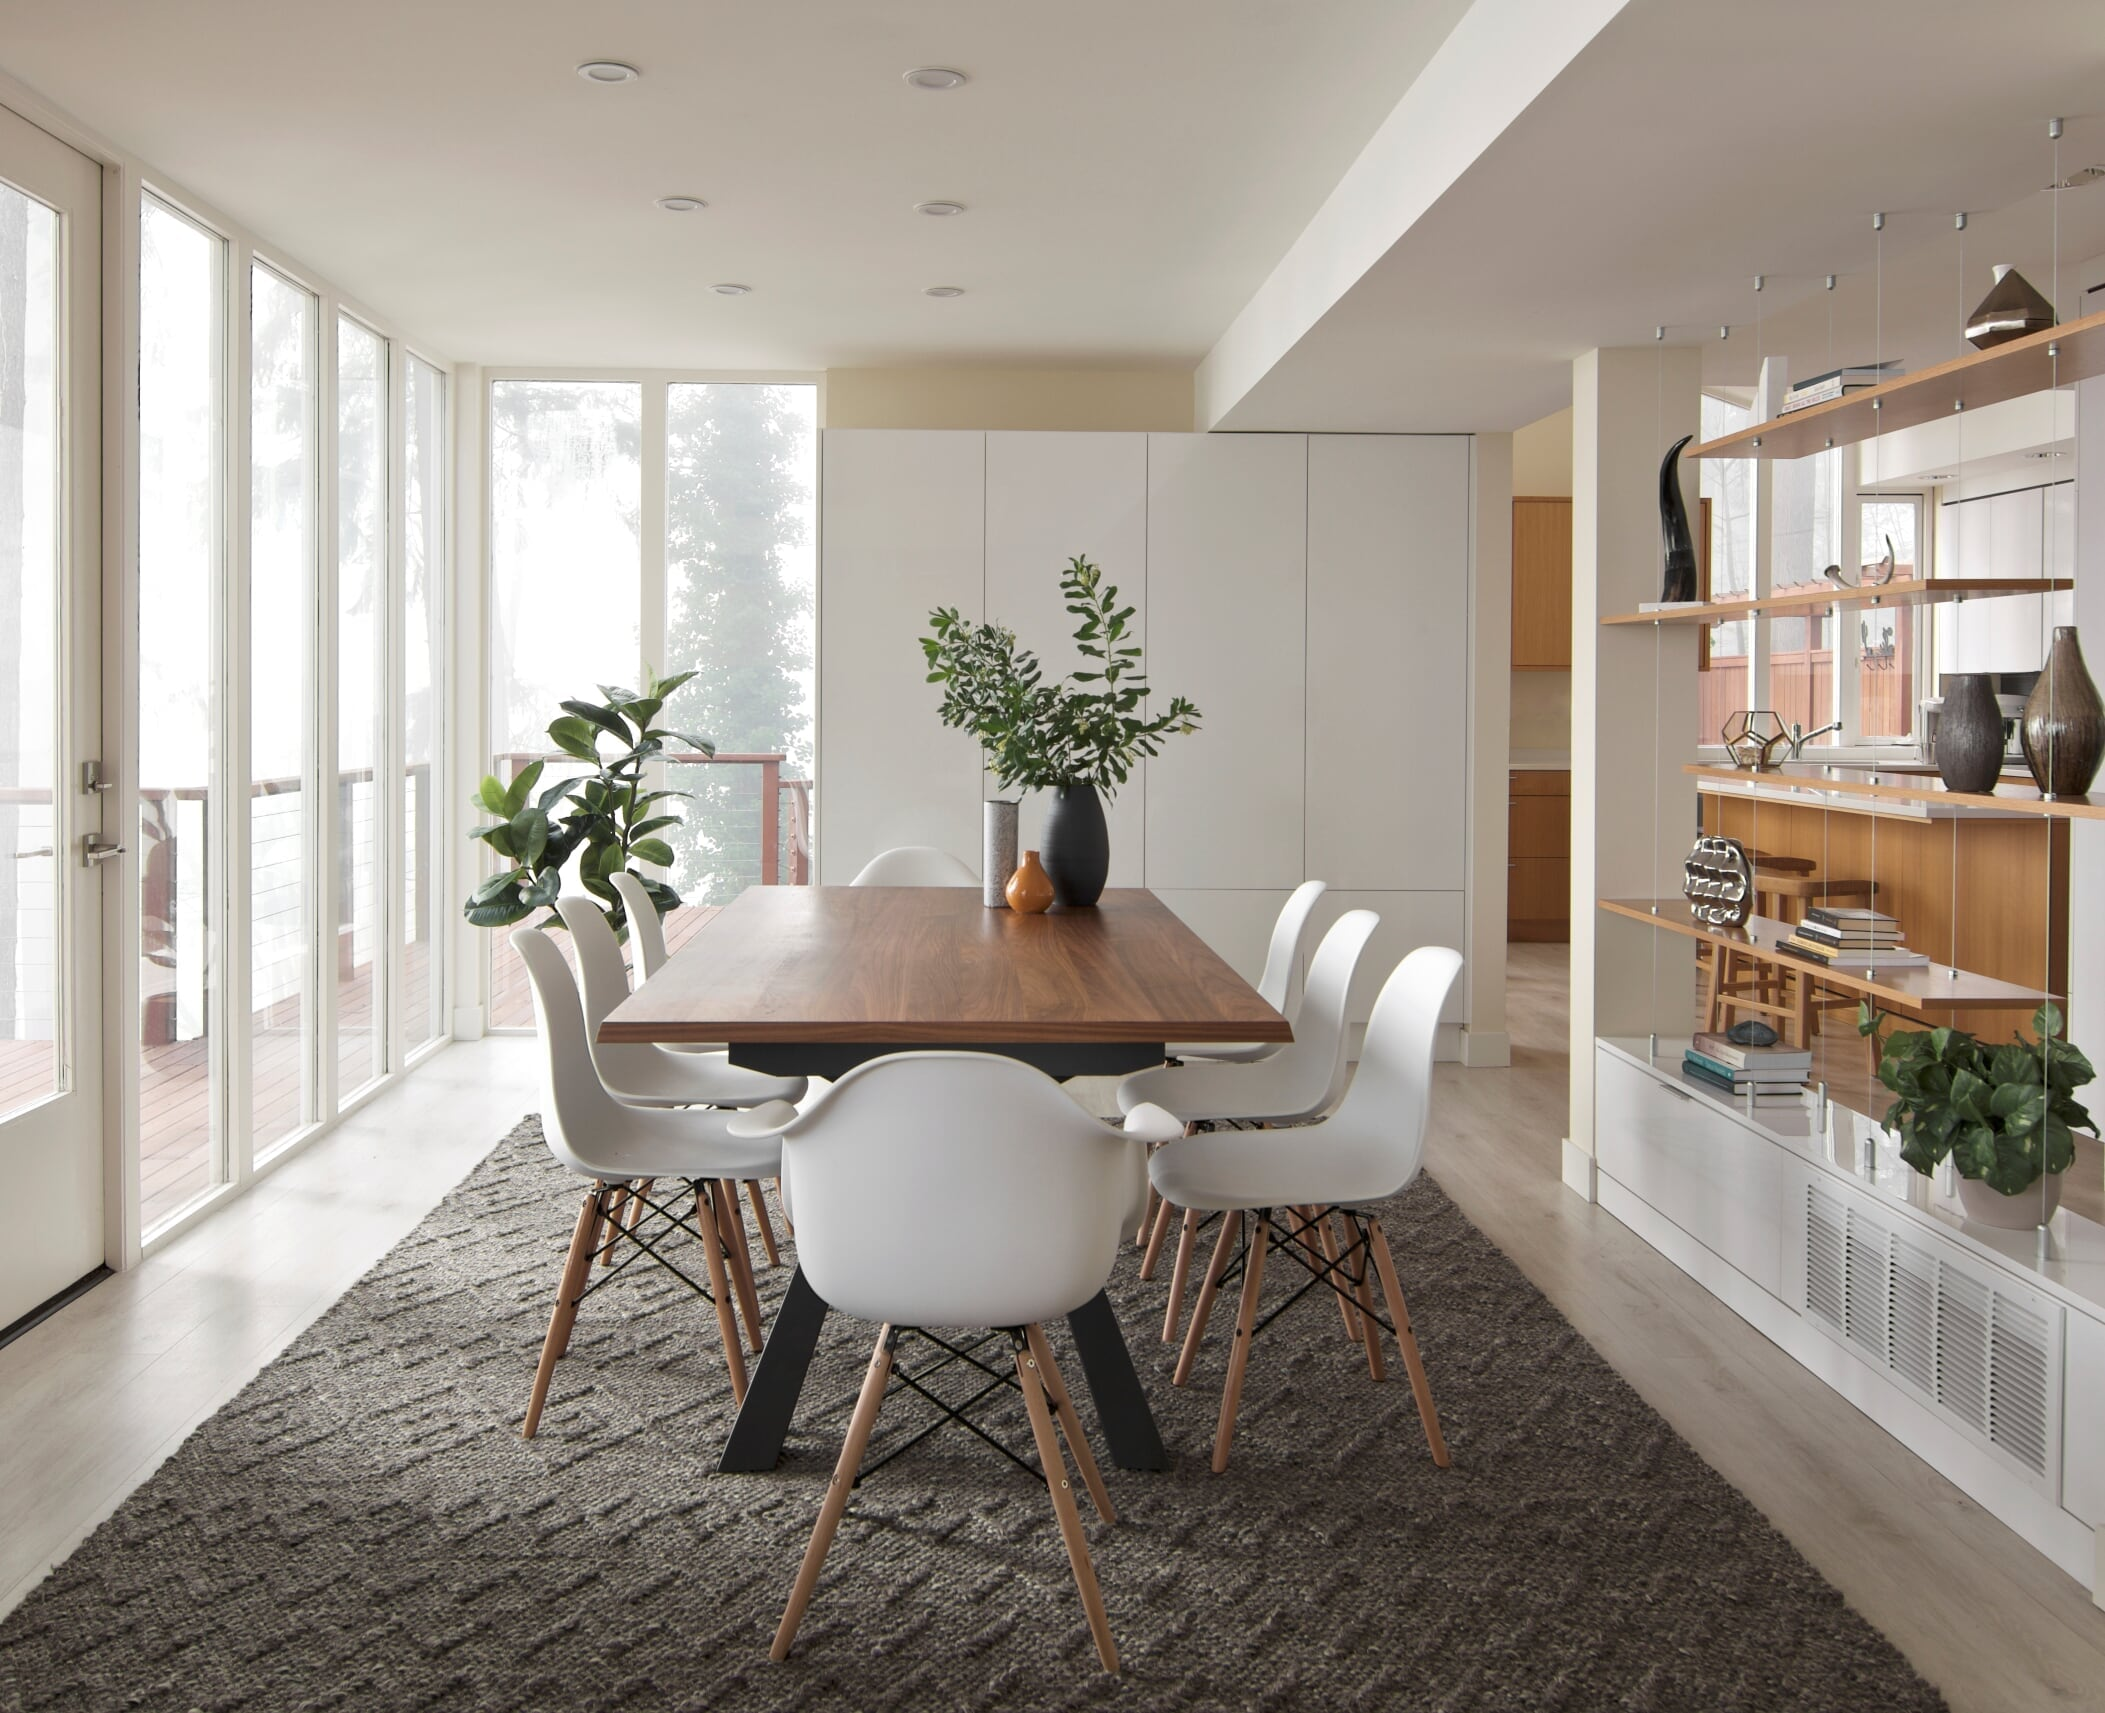 Why You Need an Interior Design Consultation